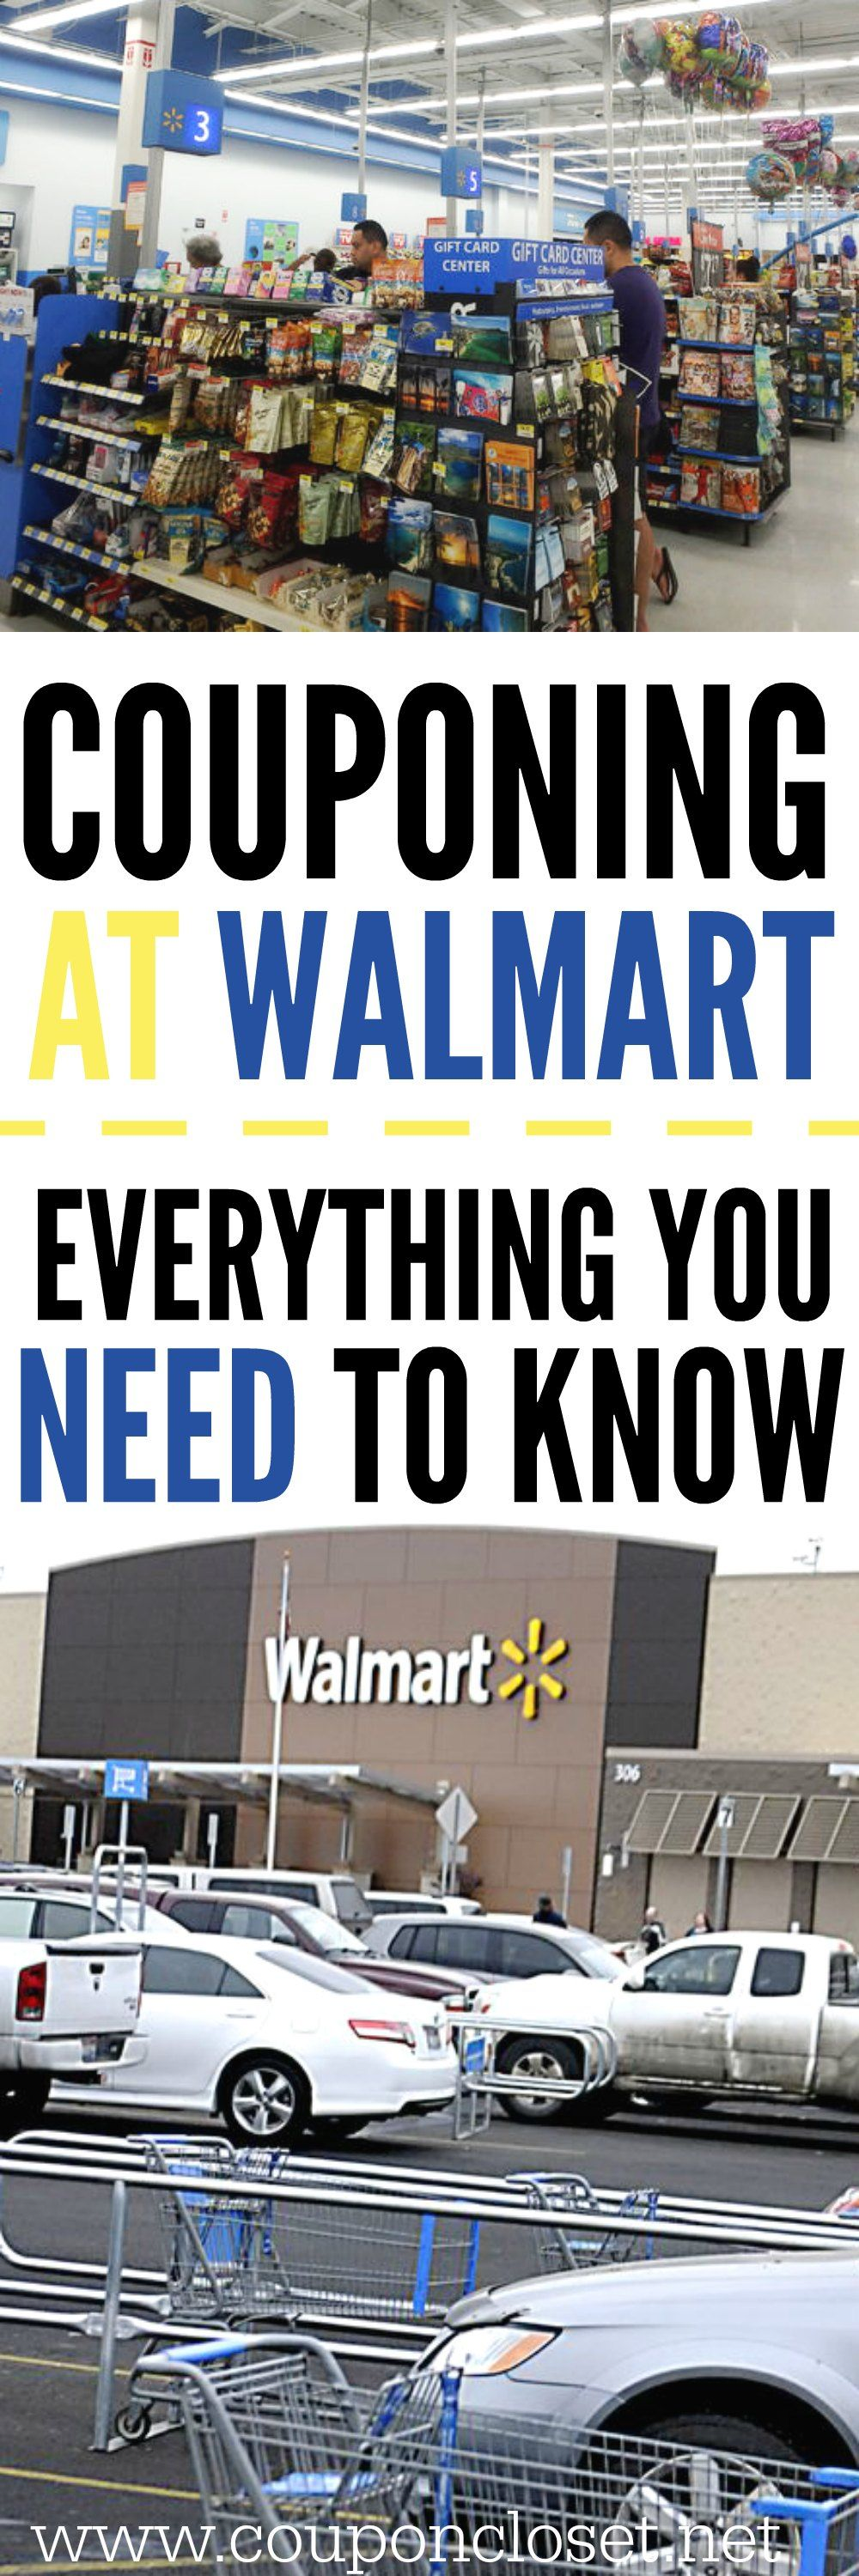 Couponing at Walmart – Tips you need to know!